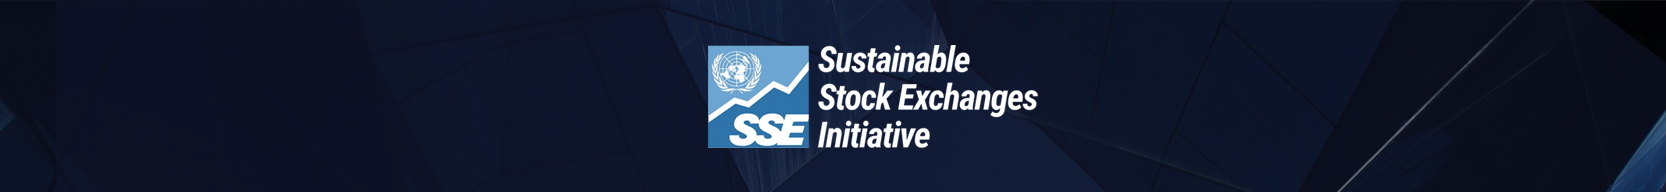 Sustainable Stock Exchanges